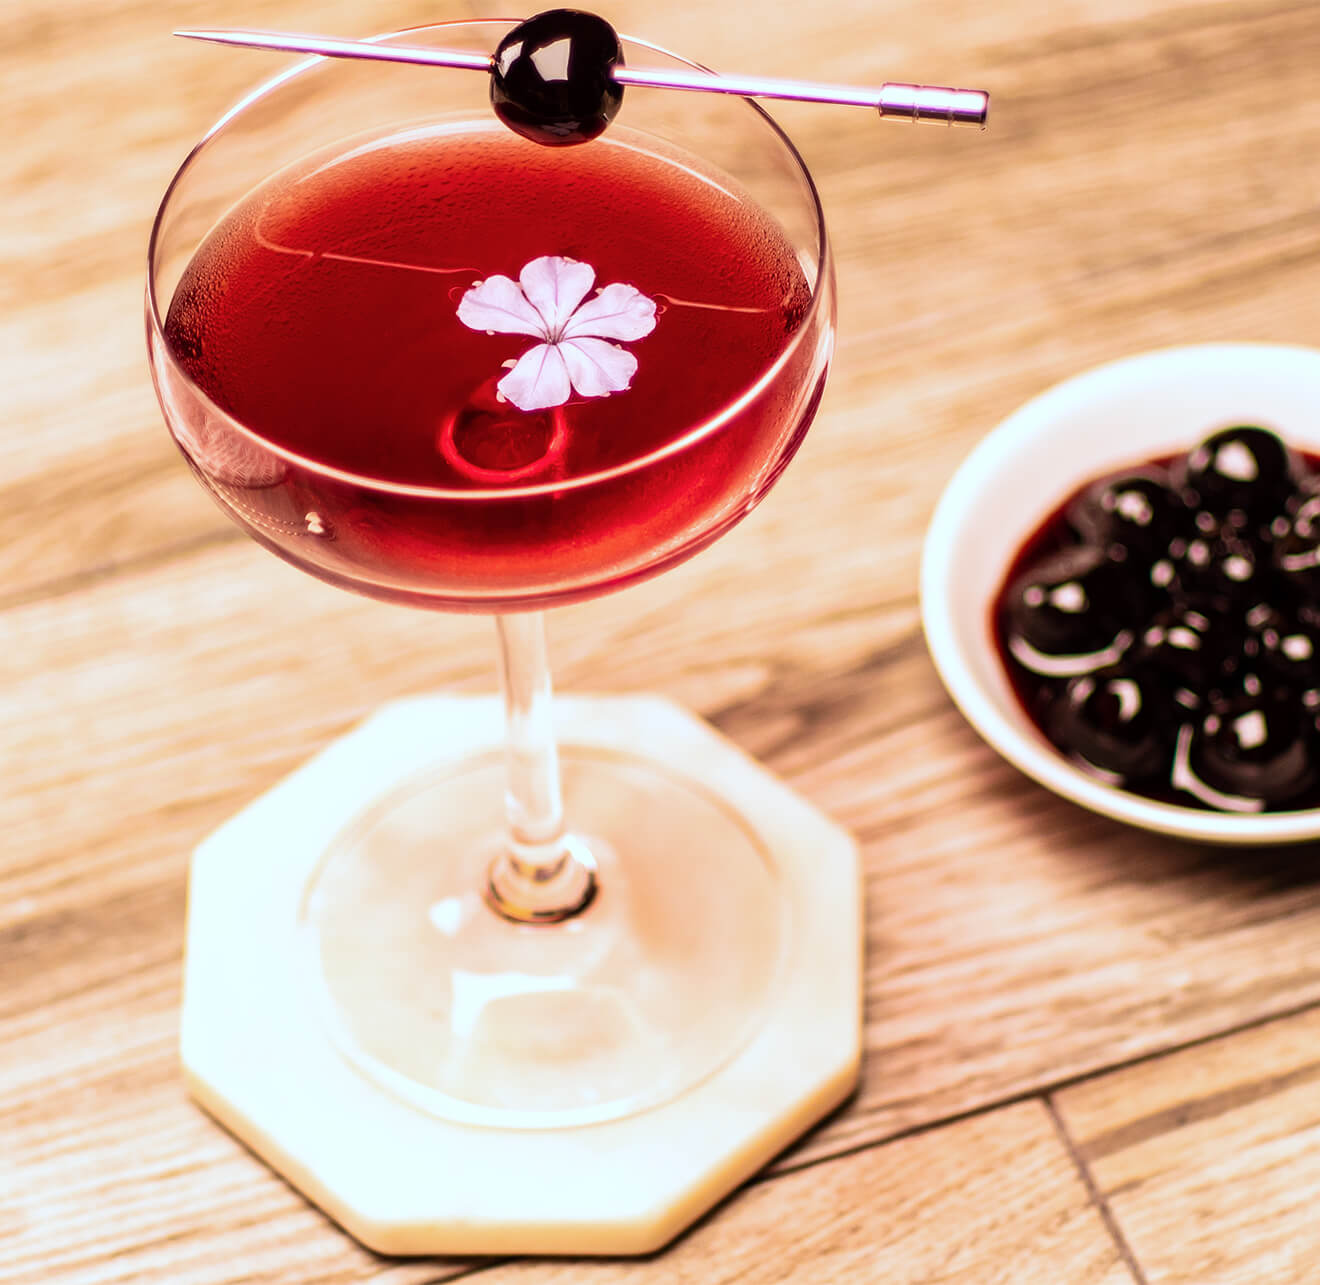 american pie manhattan cocktail with flower garnish